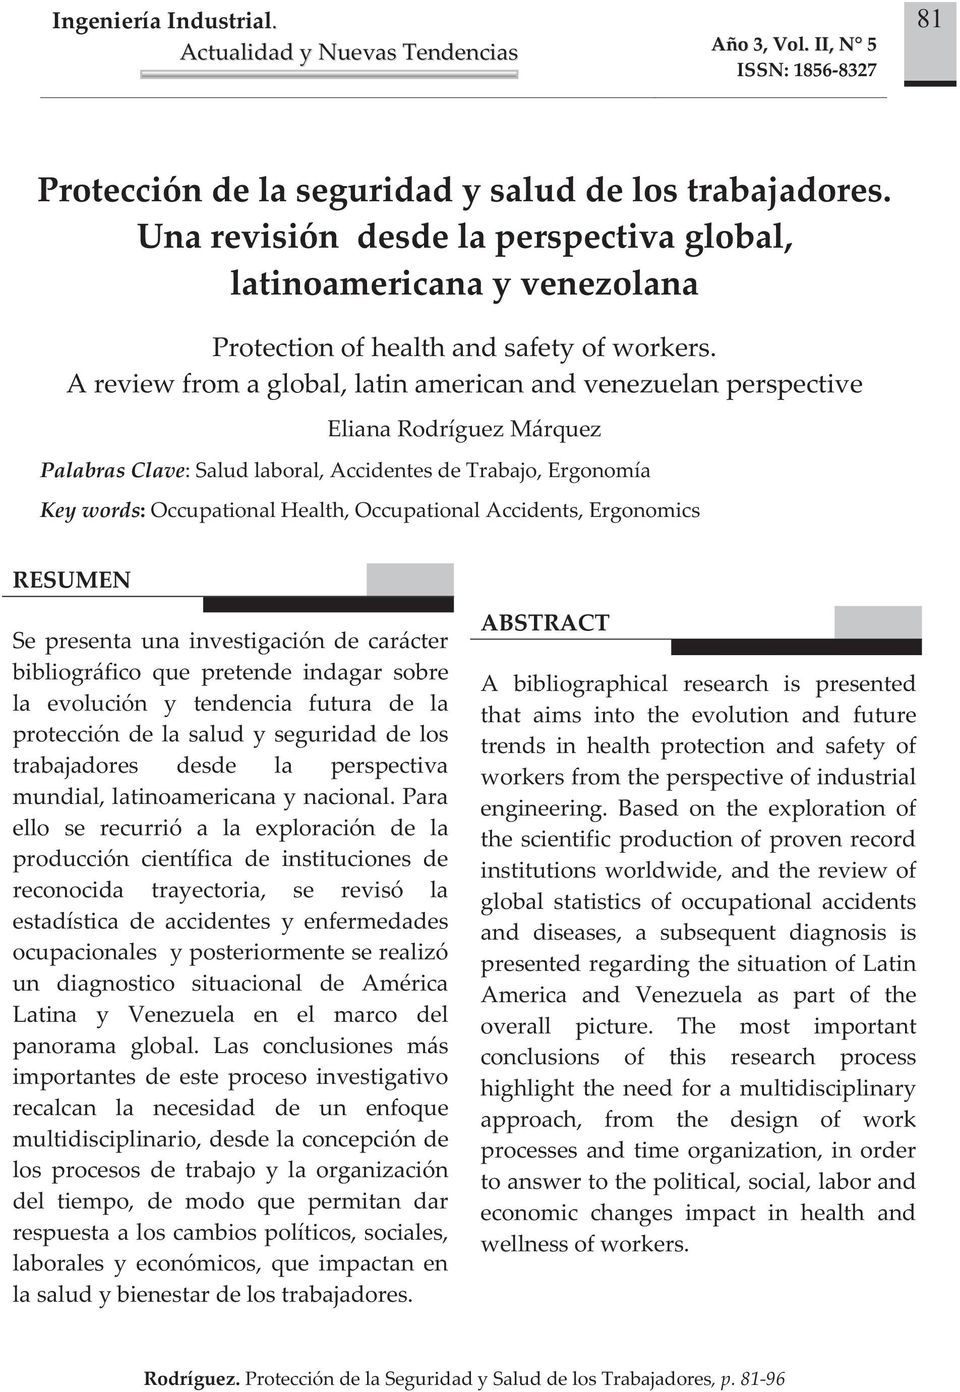 Areviewfromaglobal,latinamericanandvenezuelanperspective ElianaRodríguezMárquez PalabrasClave:Saludlaboral,AccidentesdeTrabajo,Ergonomía Keywords:OccupationalHealth,OccupationalAccidents,Ergonomics